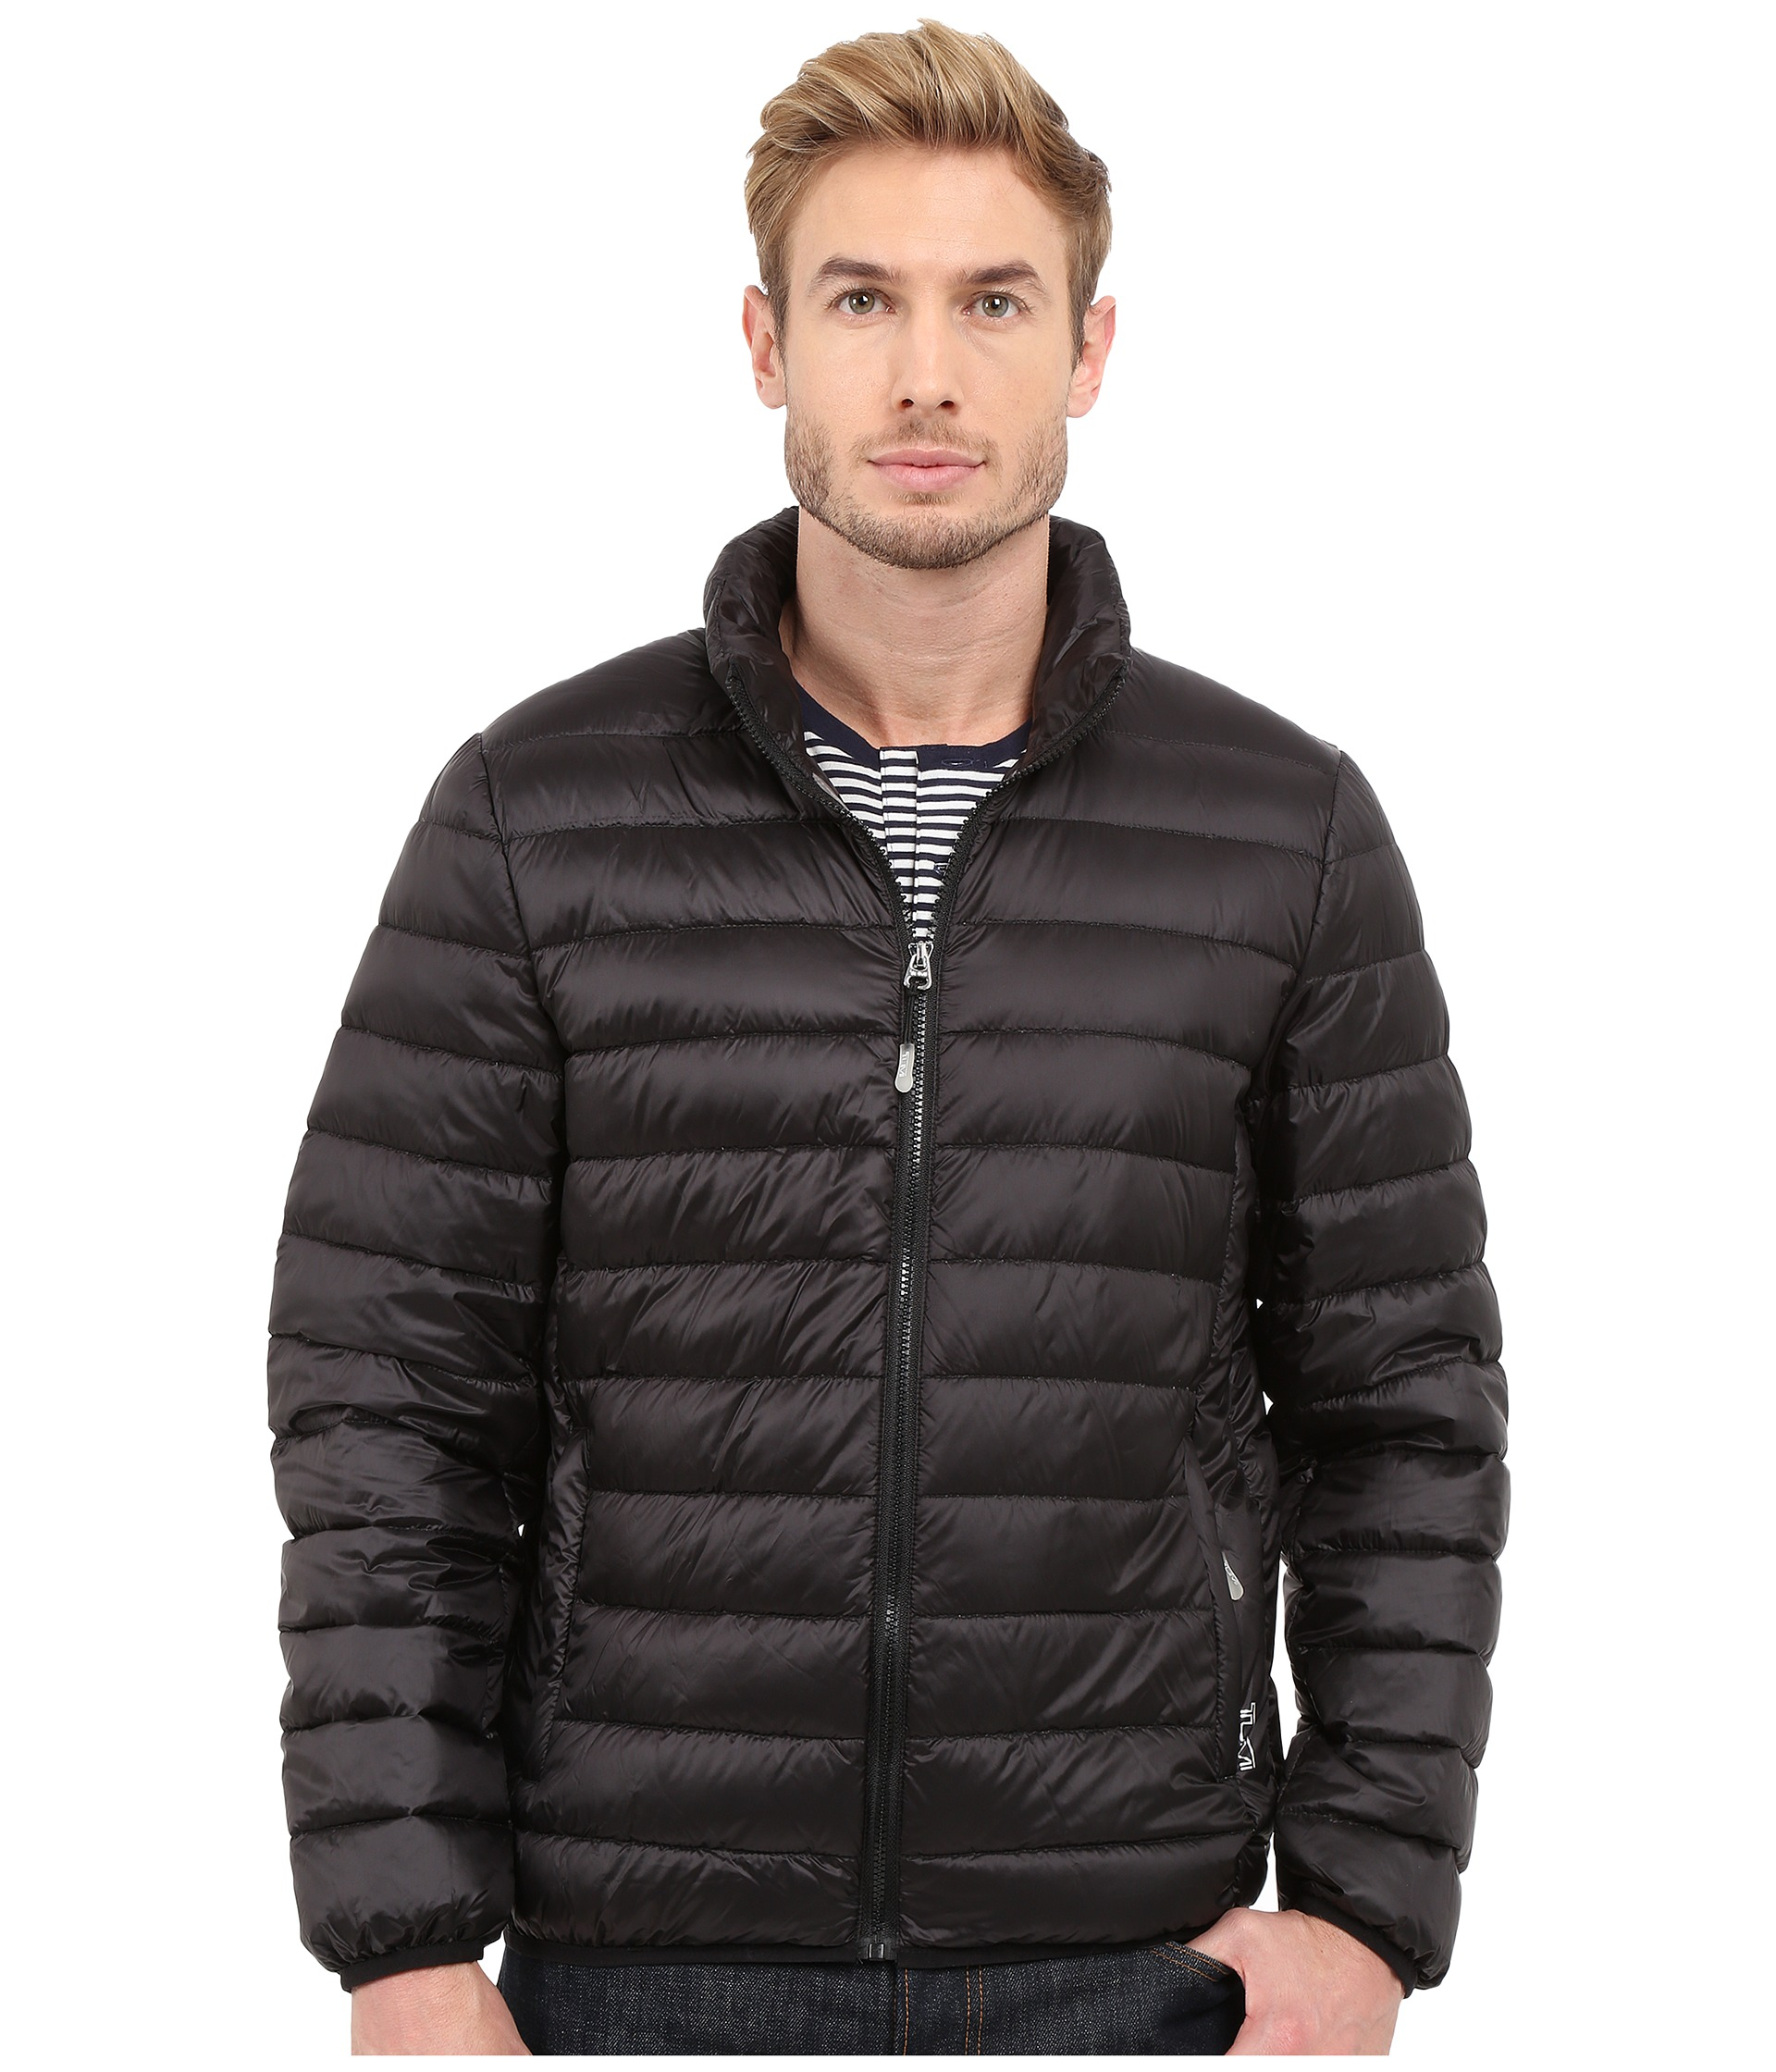 Tumi Patrol Packable Travel Puffer Jacket At Zappos Com